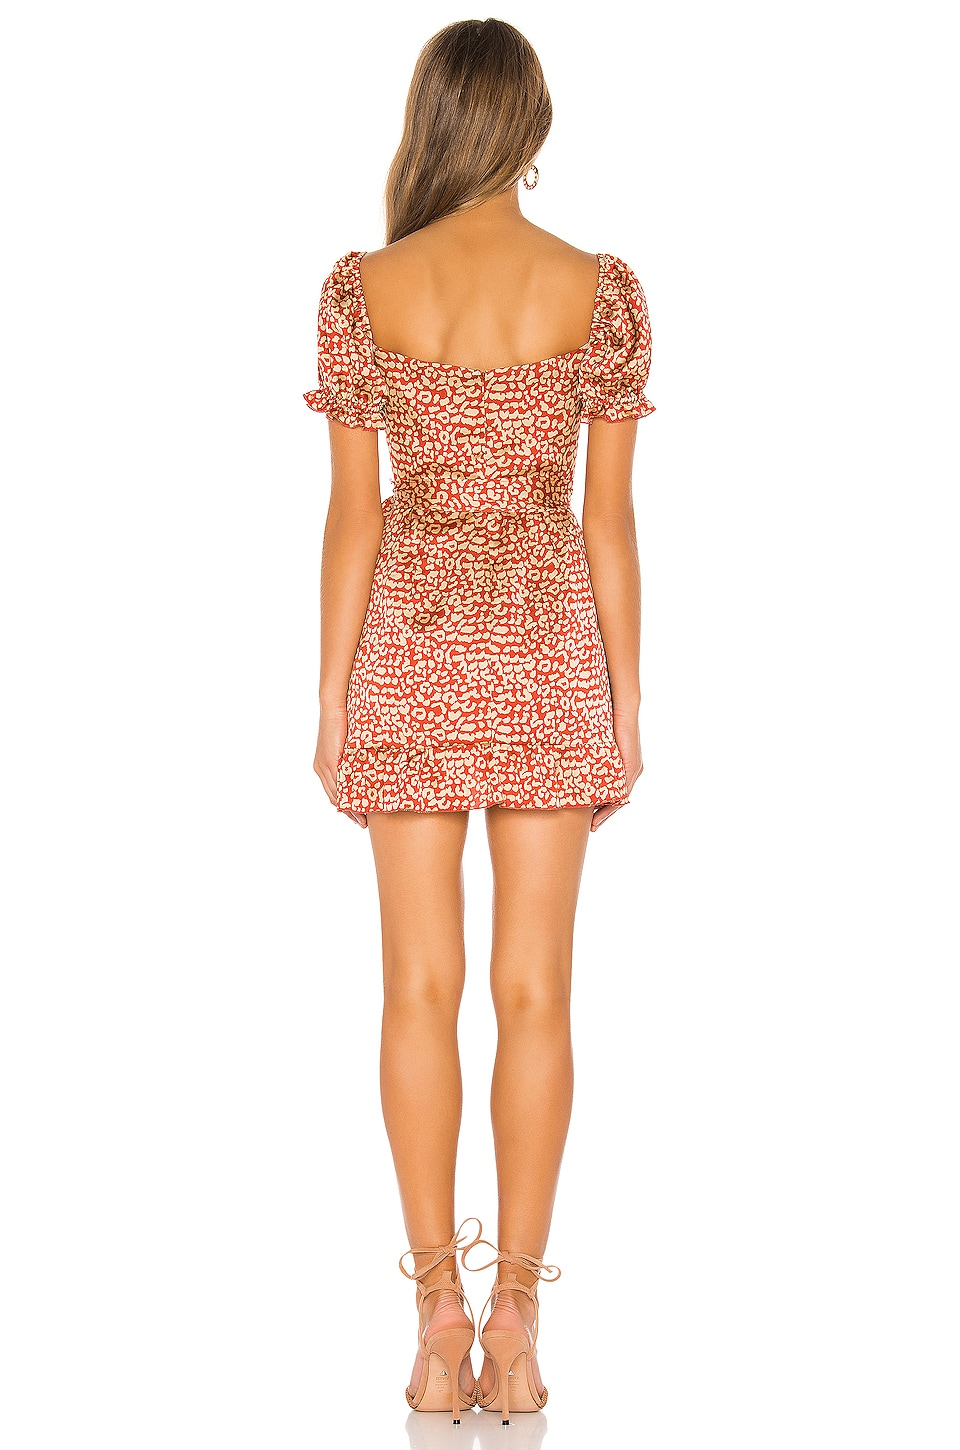 Shiloh Mini Dress, view 3, click to view large image.